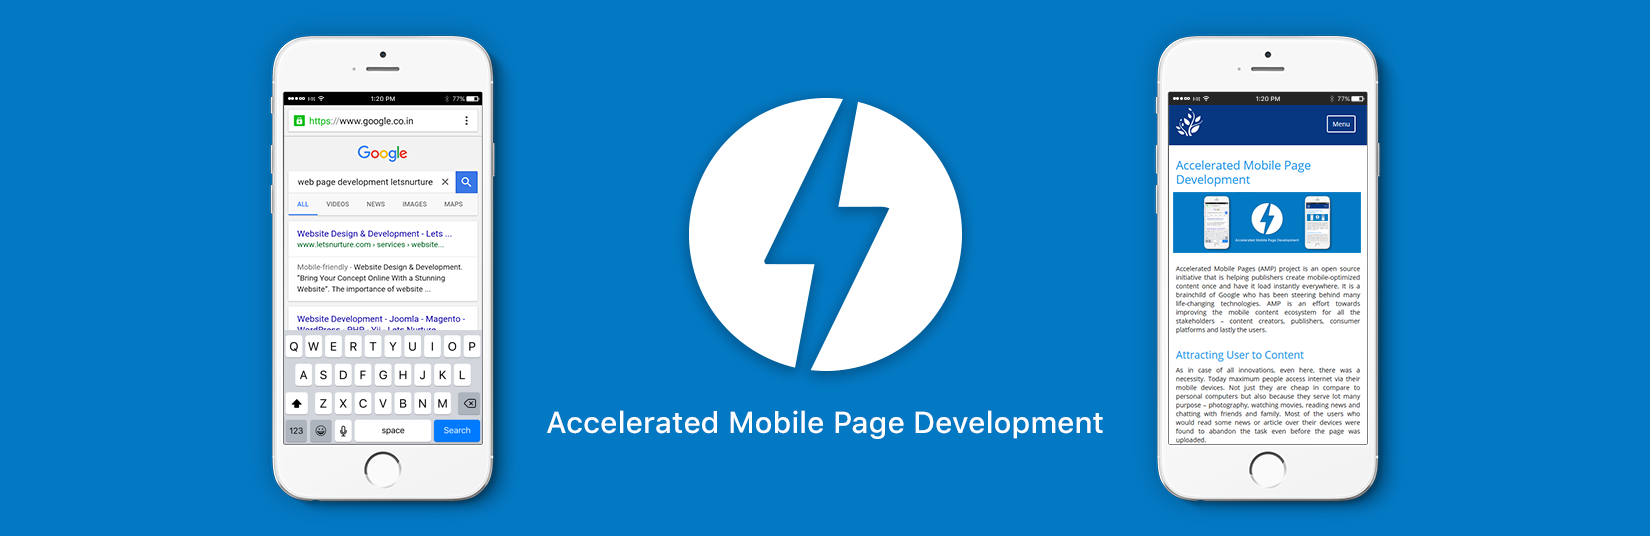 AMP mobile pages development